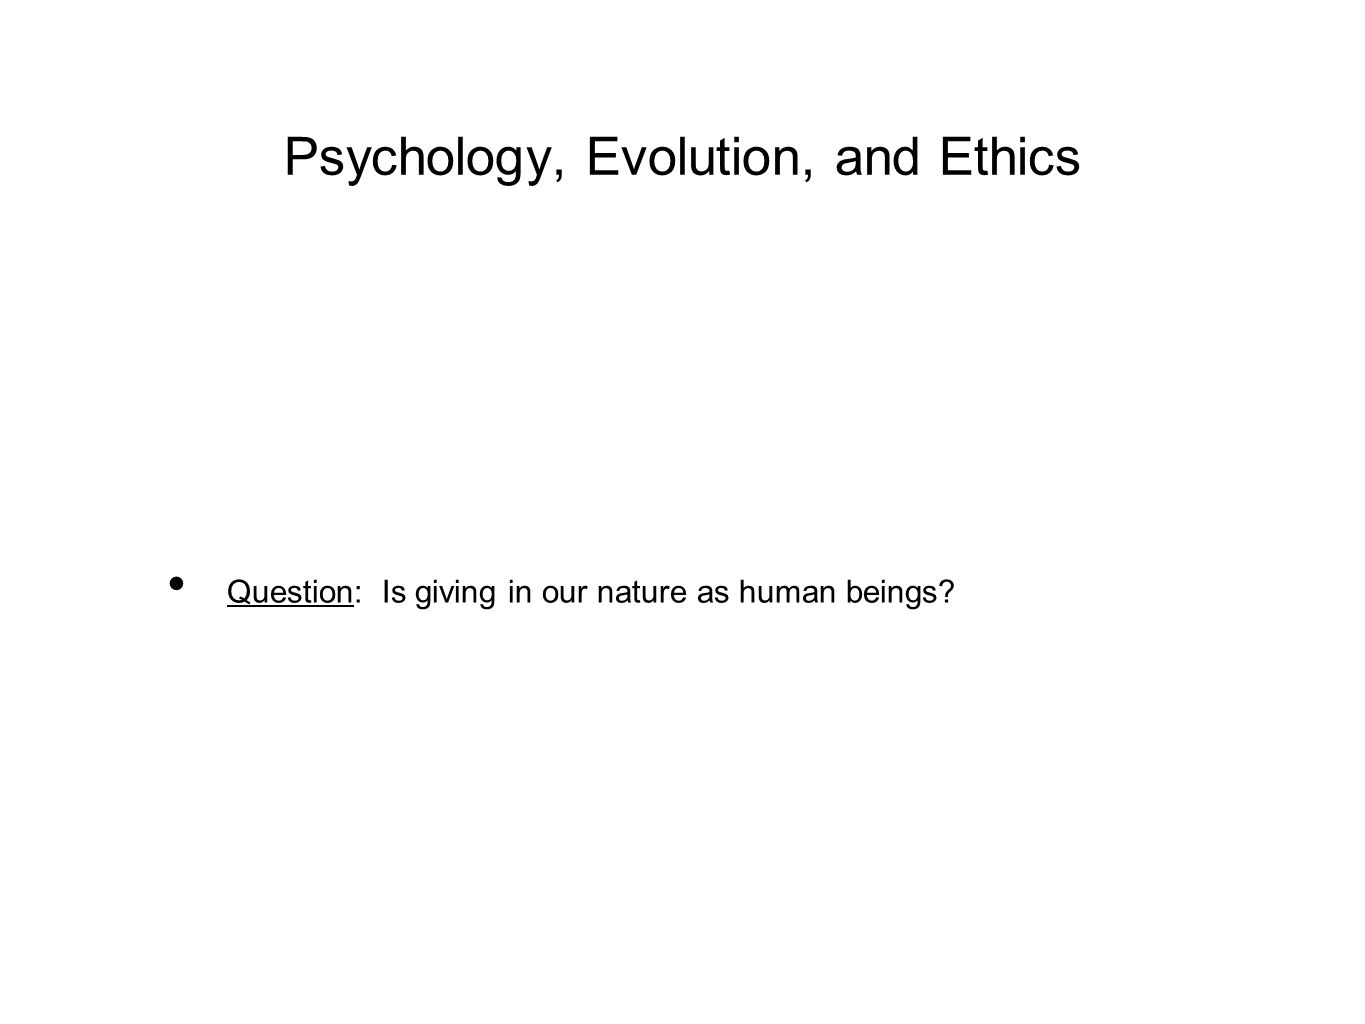 Psychology, Evolution, and Ethics Question: Is giving in our nature as human beings?